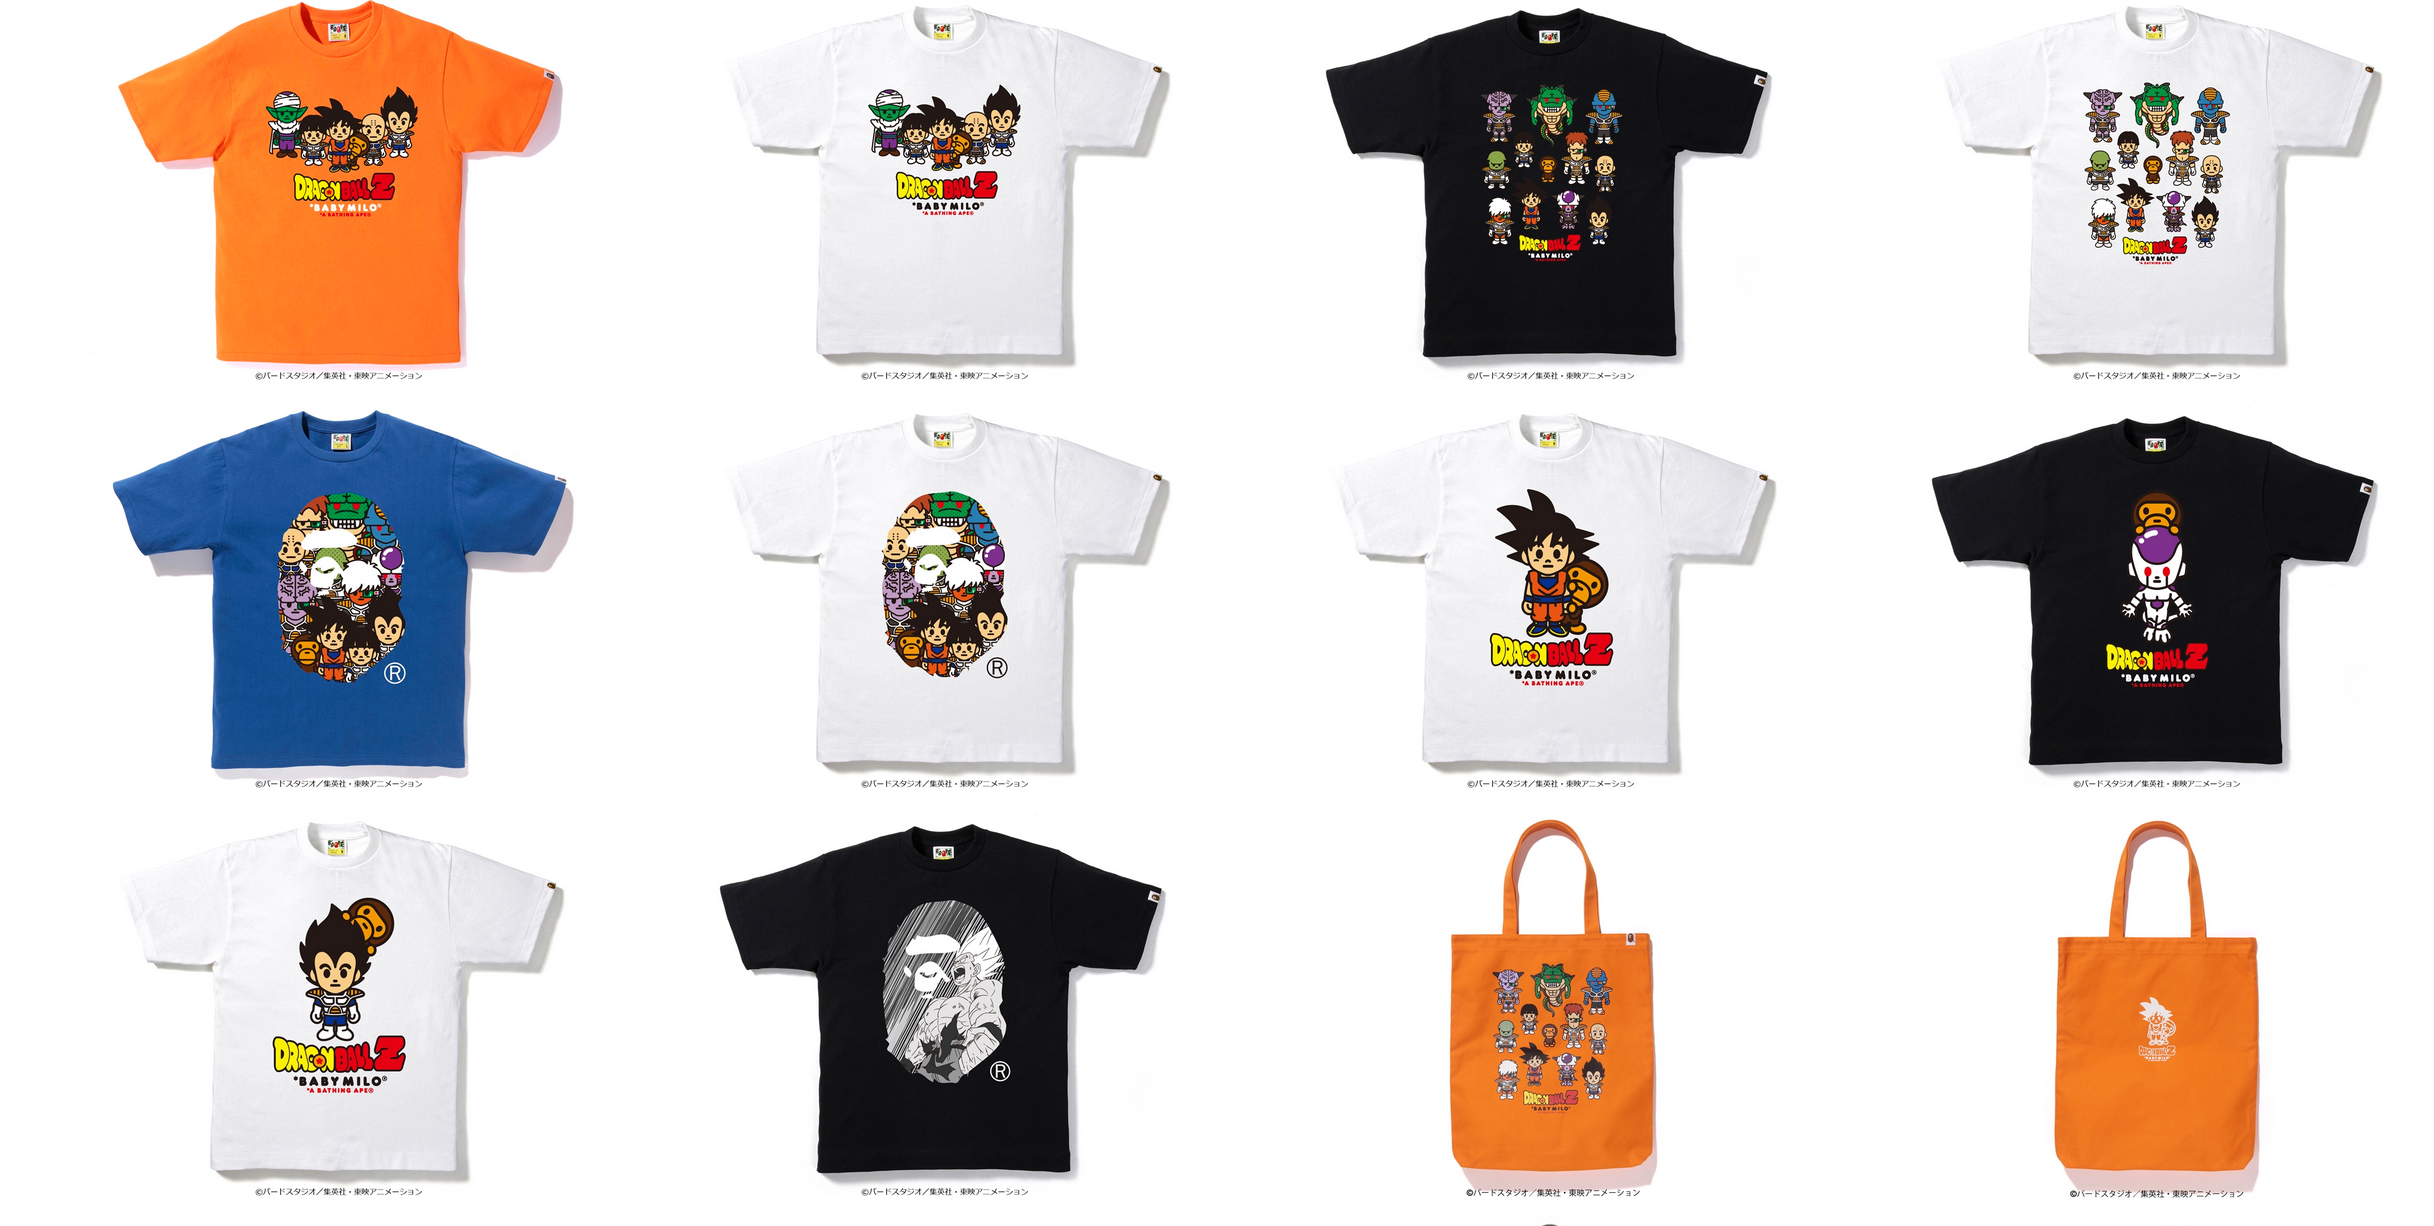 5cc453aa Items will be available for purchase at all A BATHING APE® stores in Japan  from December 9th. TAGS; A Bathing Ape · Bape · Dragon Ball X · Dragon Ball  z